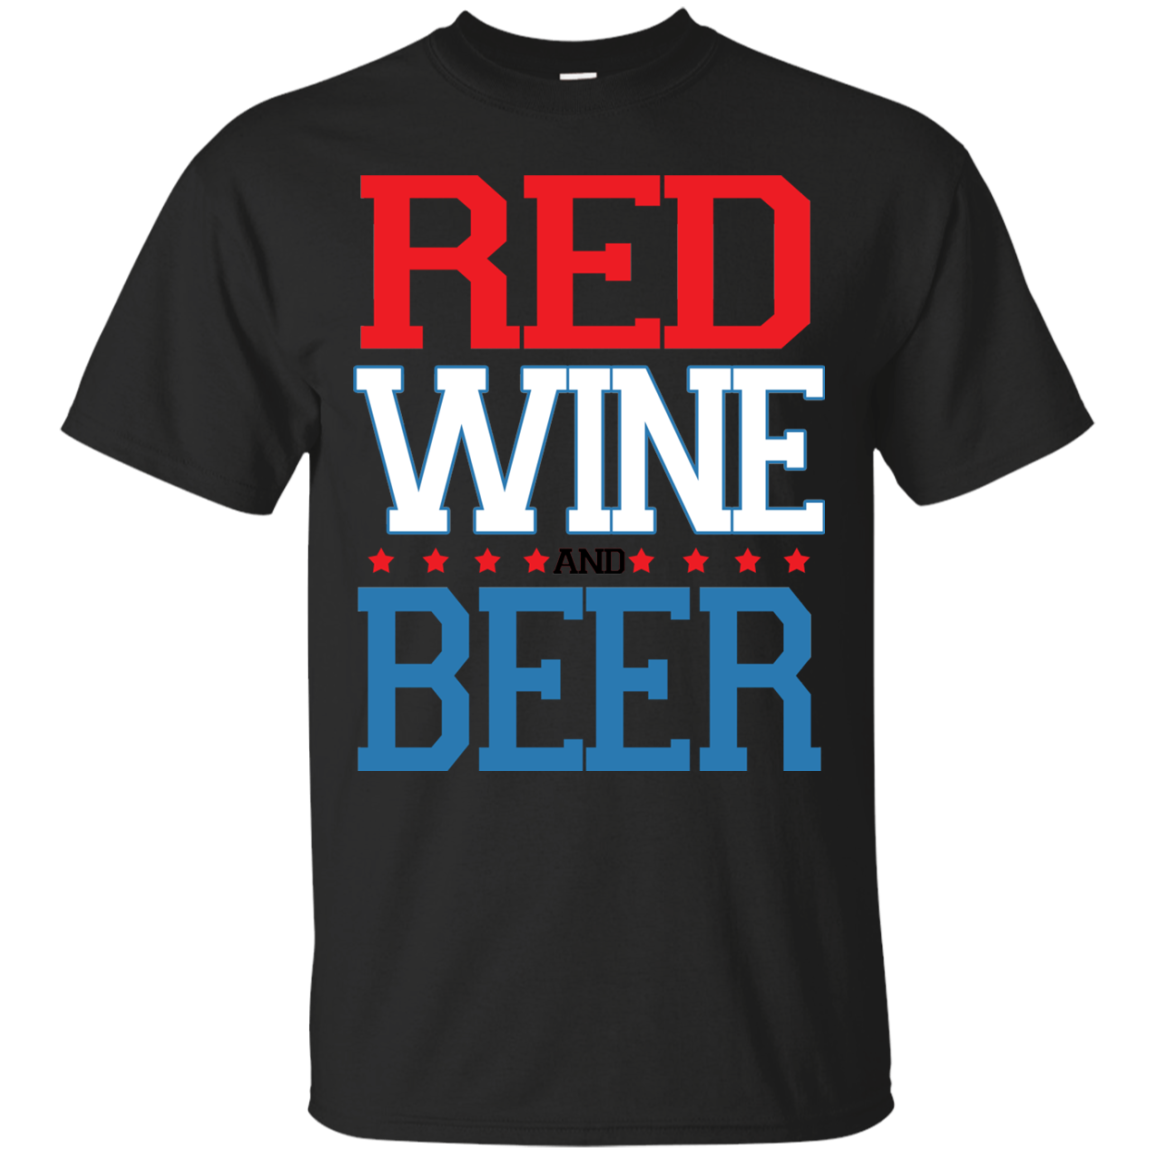 4th of July Shirt - Red Wine and Beer T-shirt Men